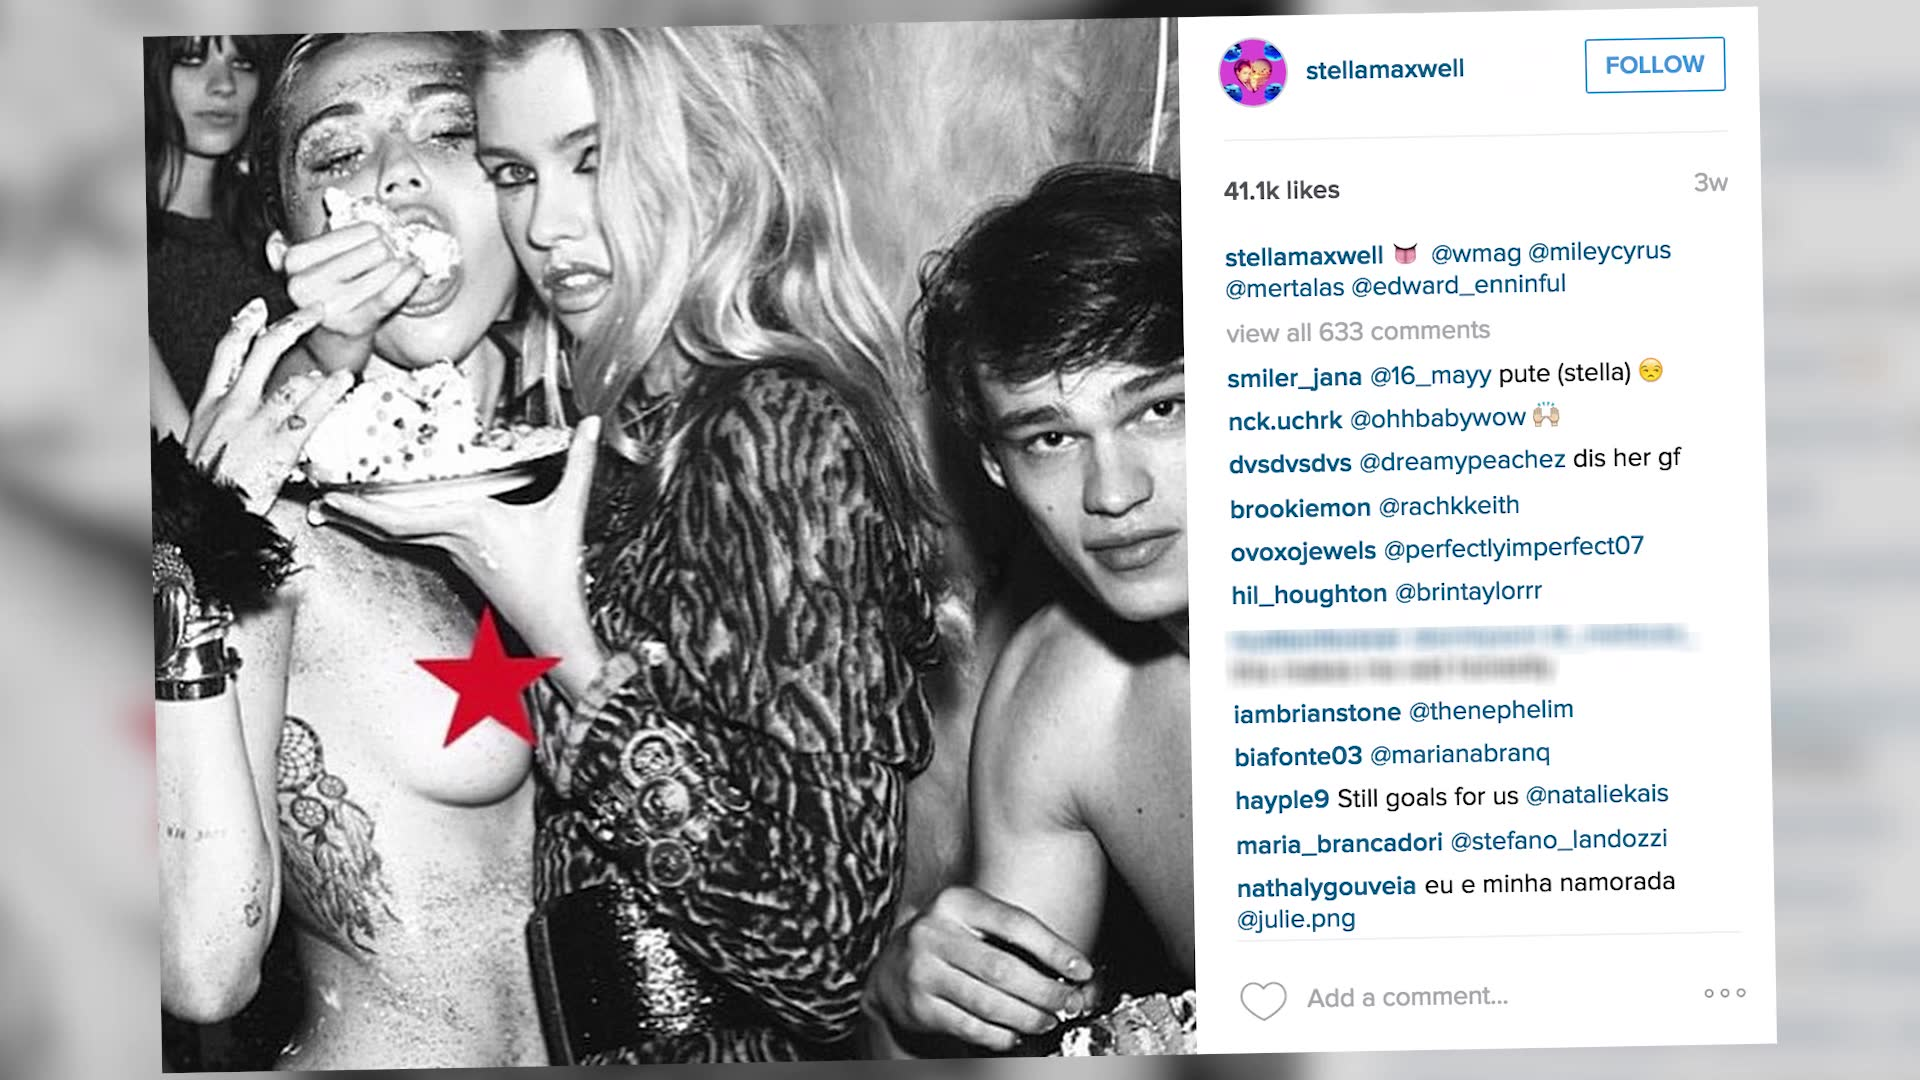 Miley Cyrus Wont Admit To Relationship With Supermodel Stella Maxwell